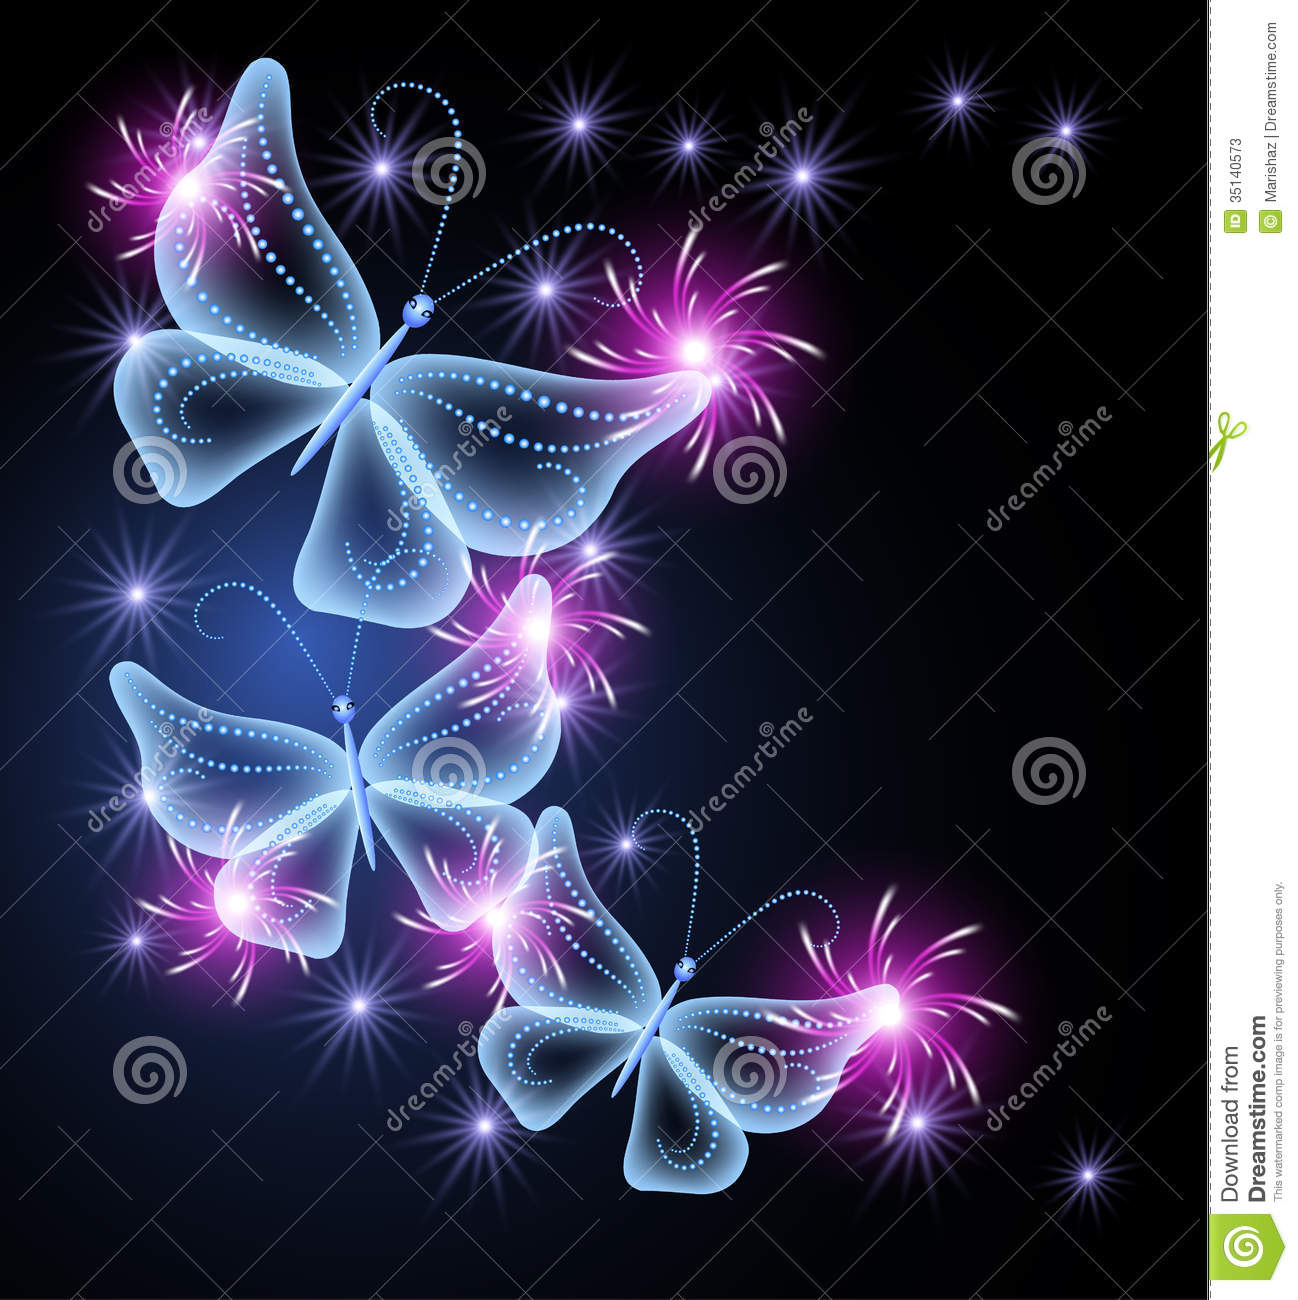 Neon Butterfly Wallpaper Butterflies and stars 1298x1300